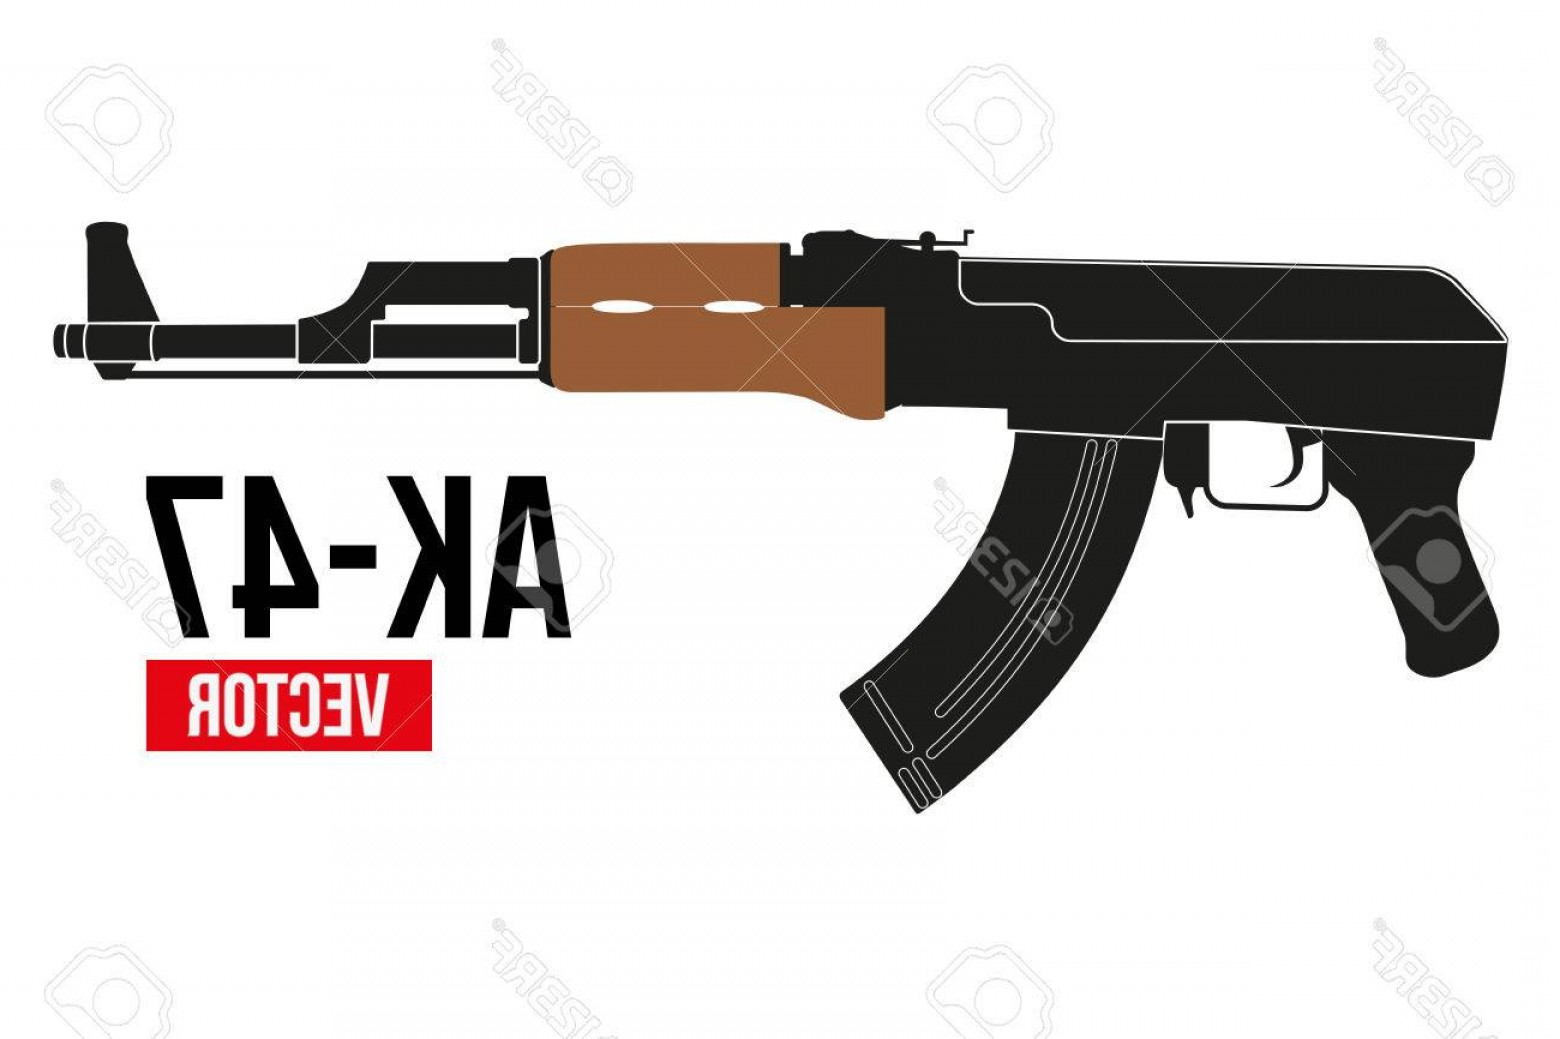 AK-47 Gun Vector: Photostock Vector Russian Automatic Machine Rifle Ak In Flat Silhouette Style Vector Illustration Isolated On White